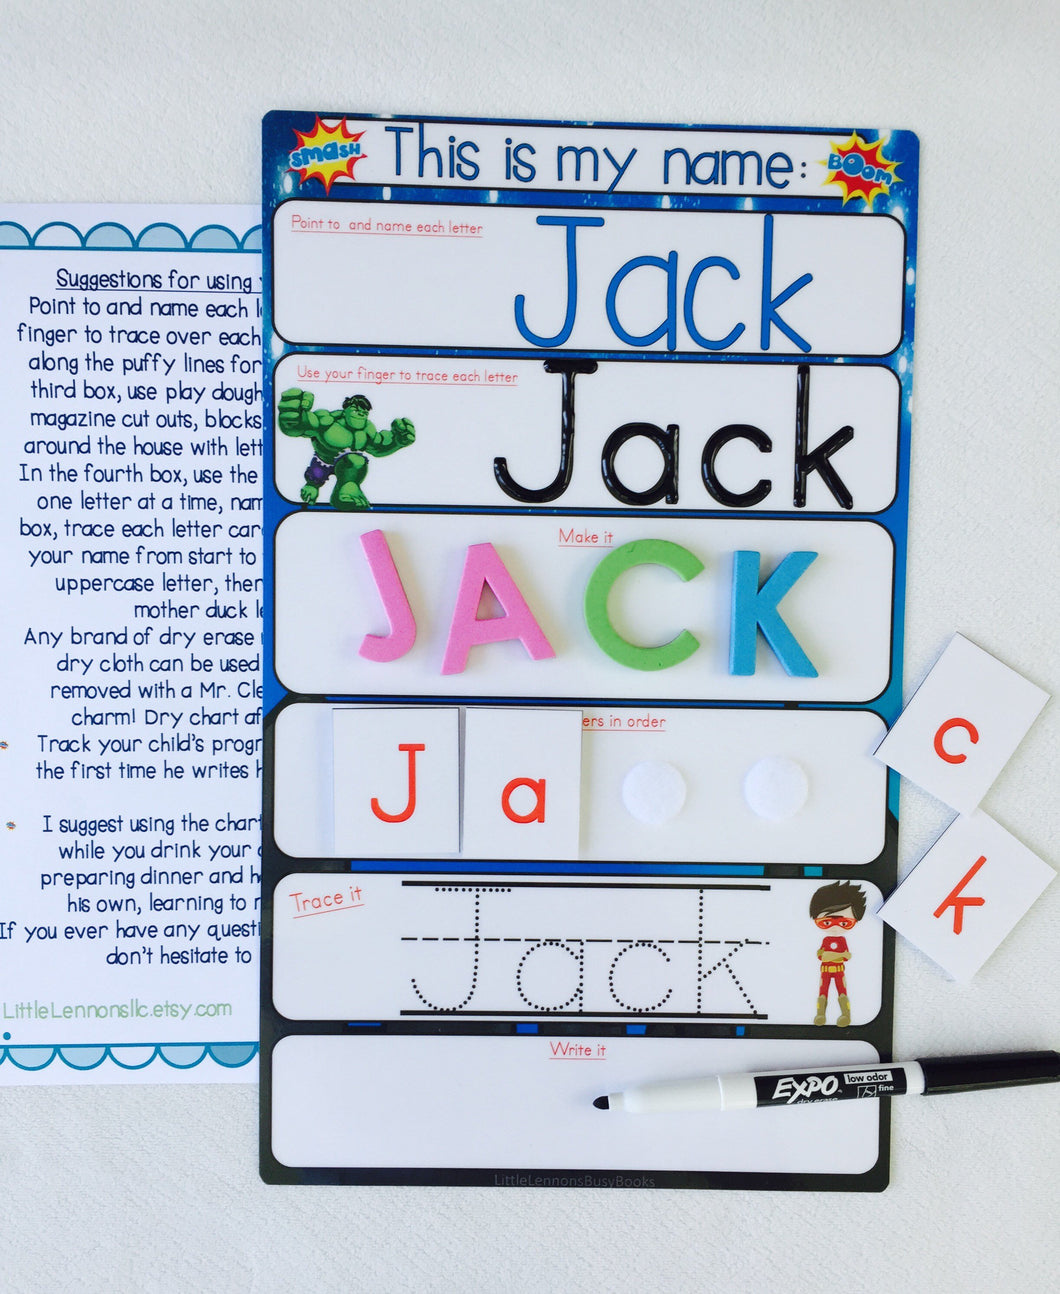 My Name Mat, learn to write name, spell name, trace name